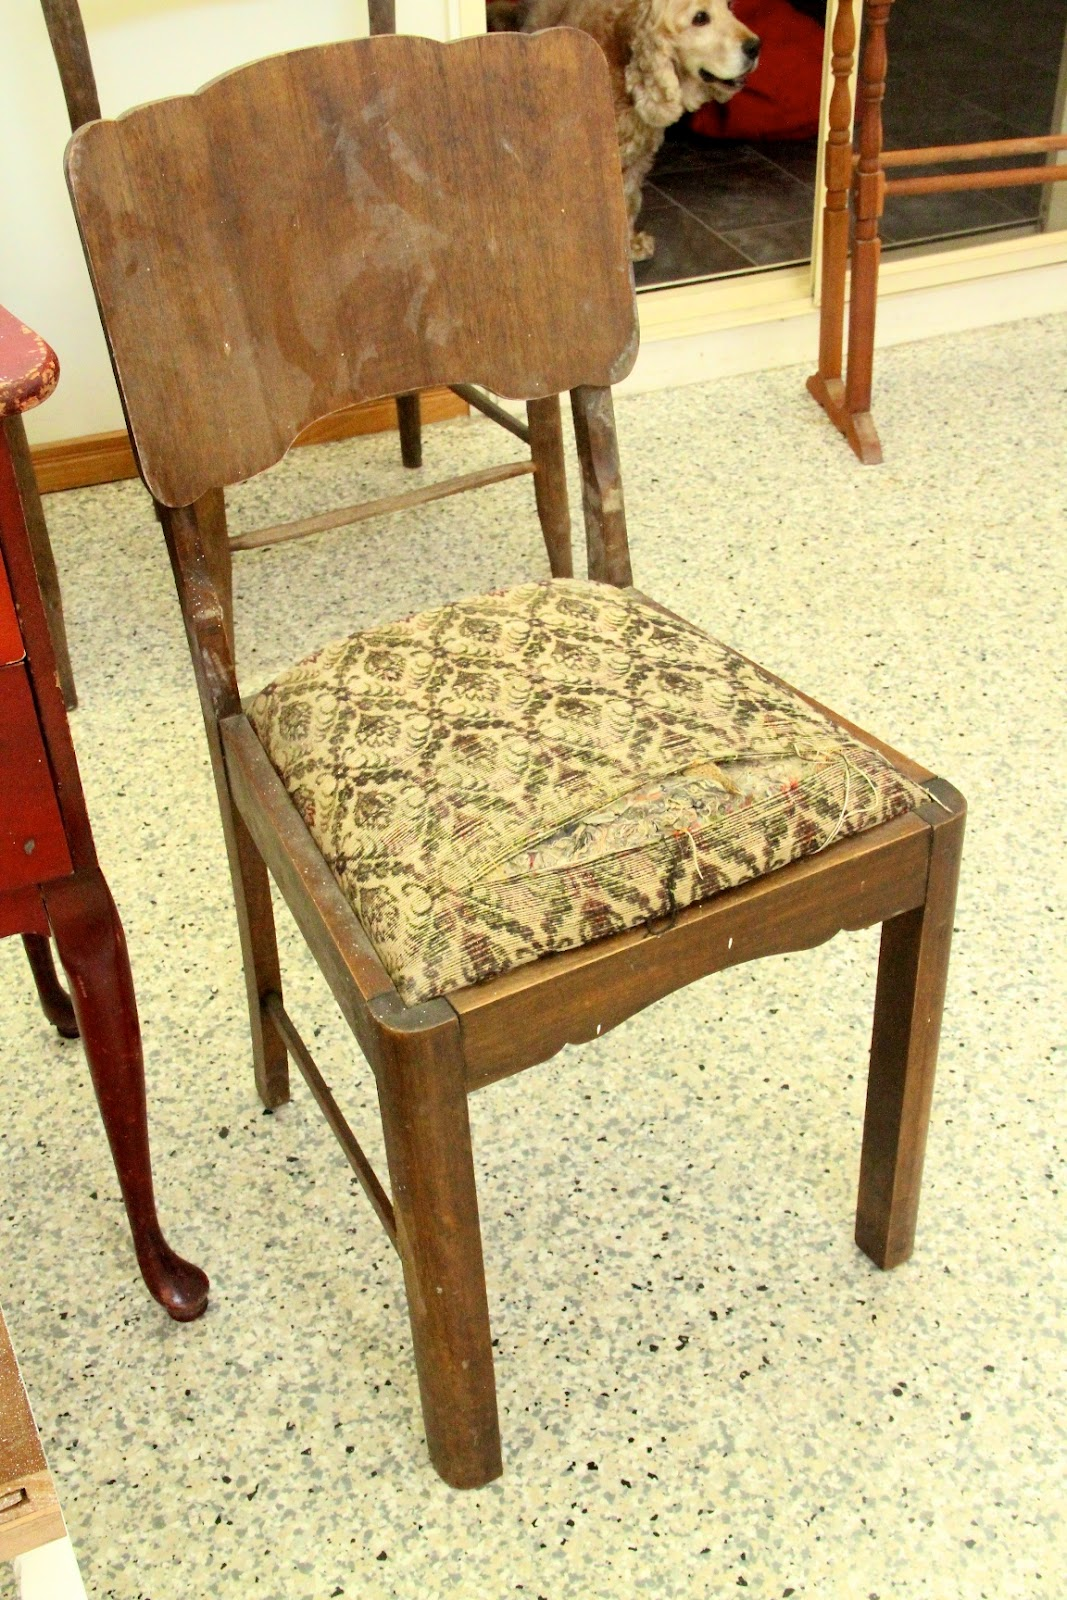 Diy Vintage Chair Recuperation. Full resolution  image, nominally Width 1067 Height 1600 pixels, image with #C02E0B.